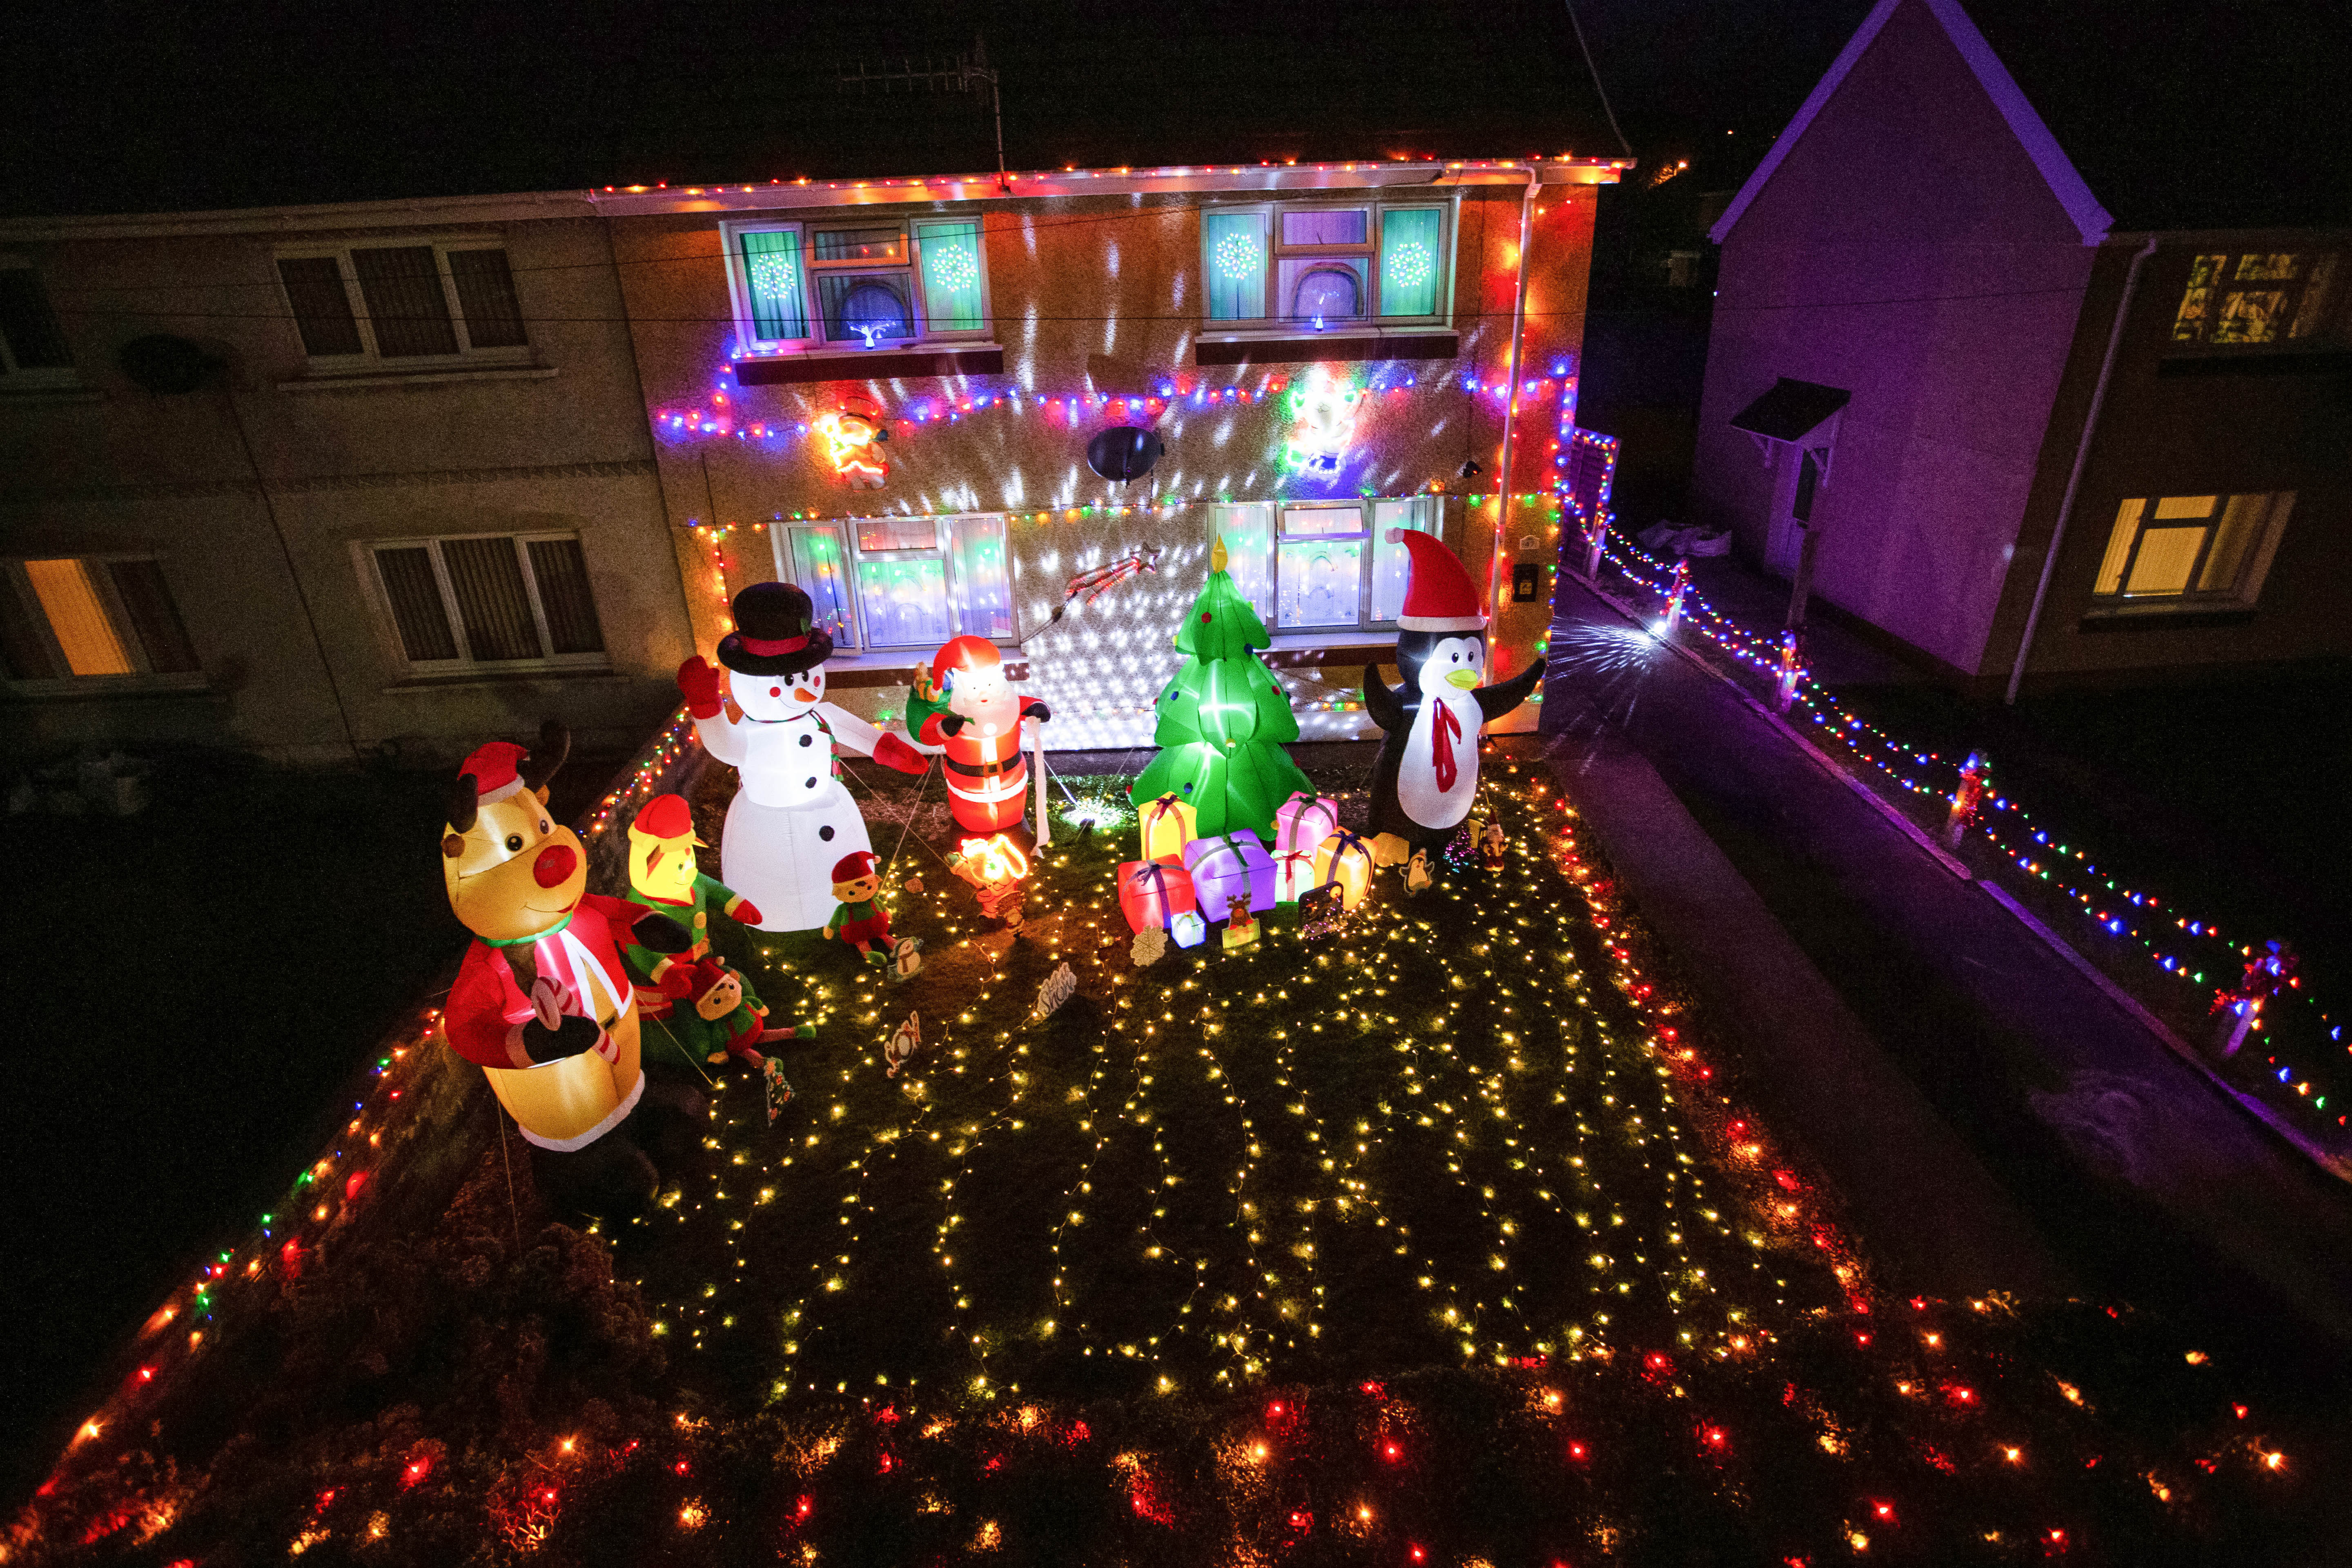 A mum has gone all out to cheer up her kids and neighbours by putting up her CHRISTMAS decorations three months early - including 3,000 outdoor lights. Caroline Gabe, 46, has been shielding with her children since March - and said putting up her tree and decorations in September was a much-needed boost. She has spent the year buying outdoor lights and installations - from as far away as America - and put them all up last week, on a whim. Almost all of them are outside - including 3,000 fairy lights, sparkling snow, an 8ft inflatable snowman, as well as Santa and his reindeer.